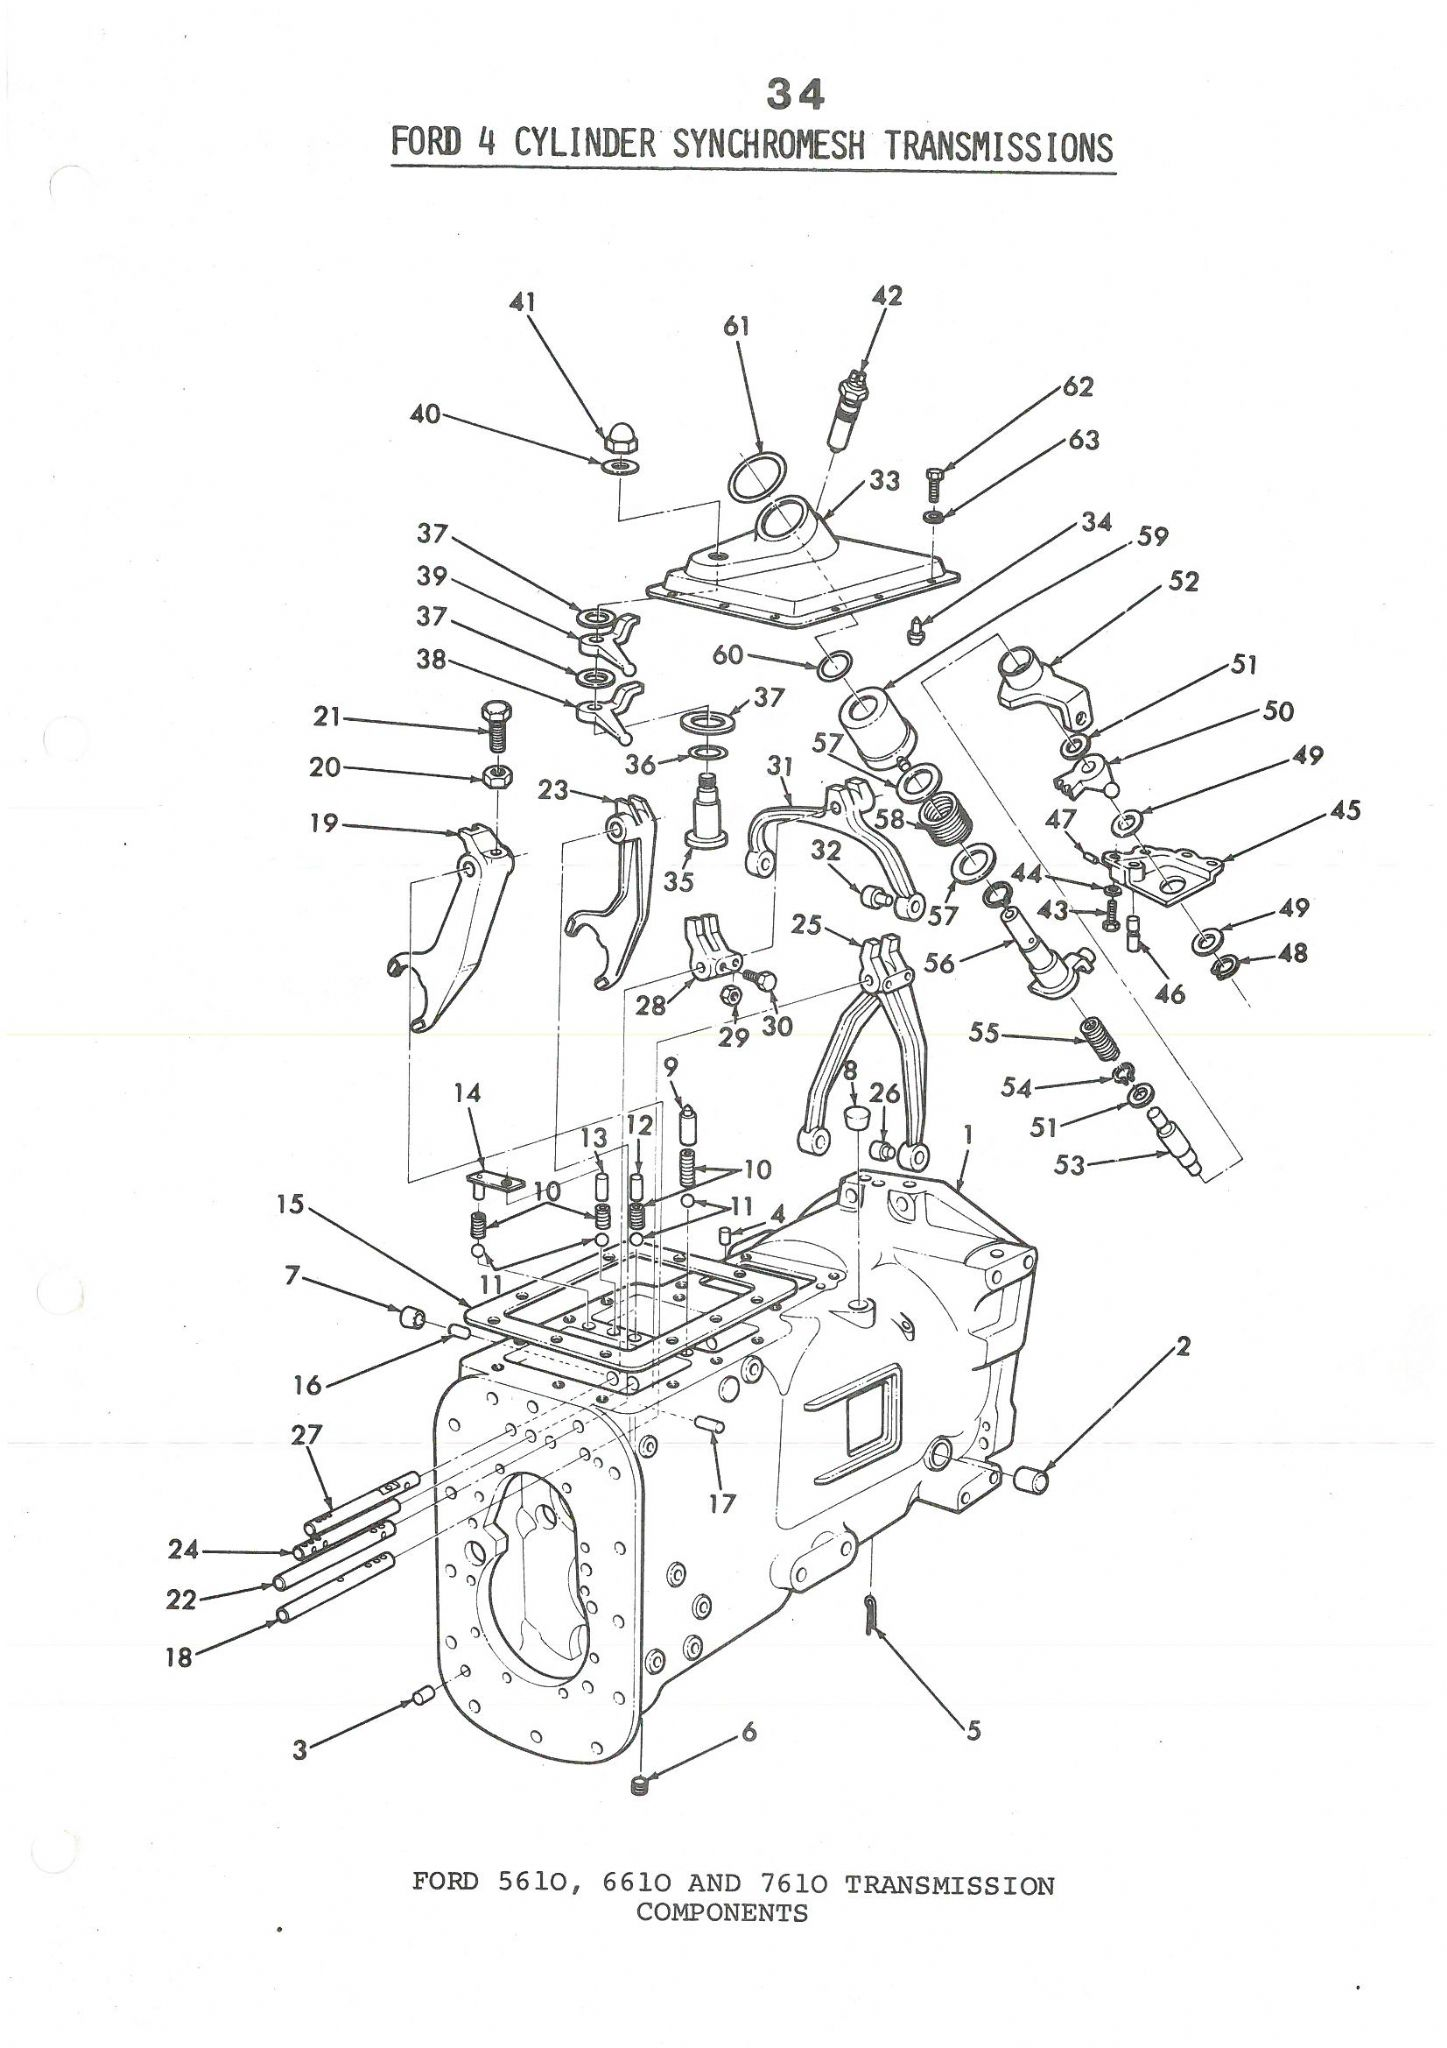 5610 Ford Tractor Parts Diagram : Ford tractor hydraulics diagram imageresizertool